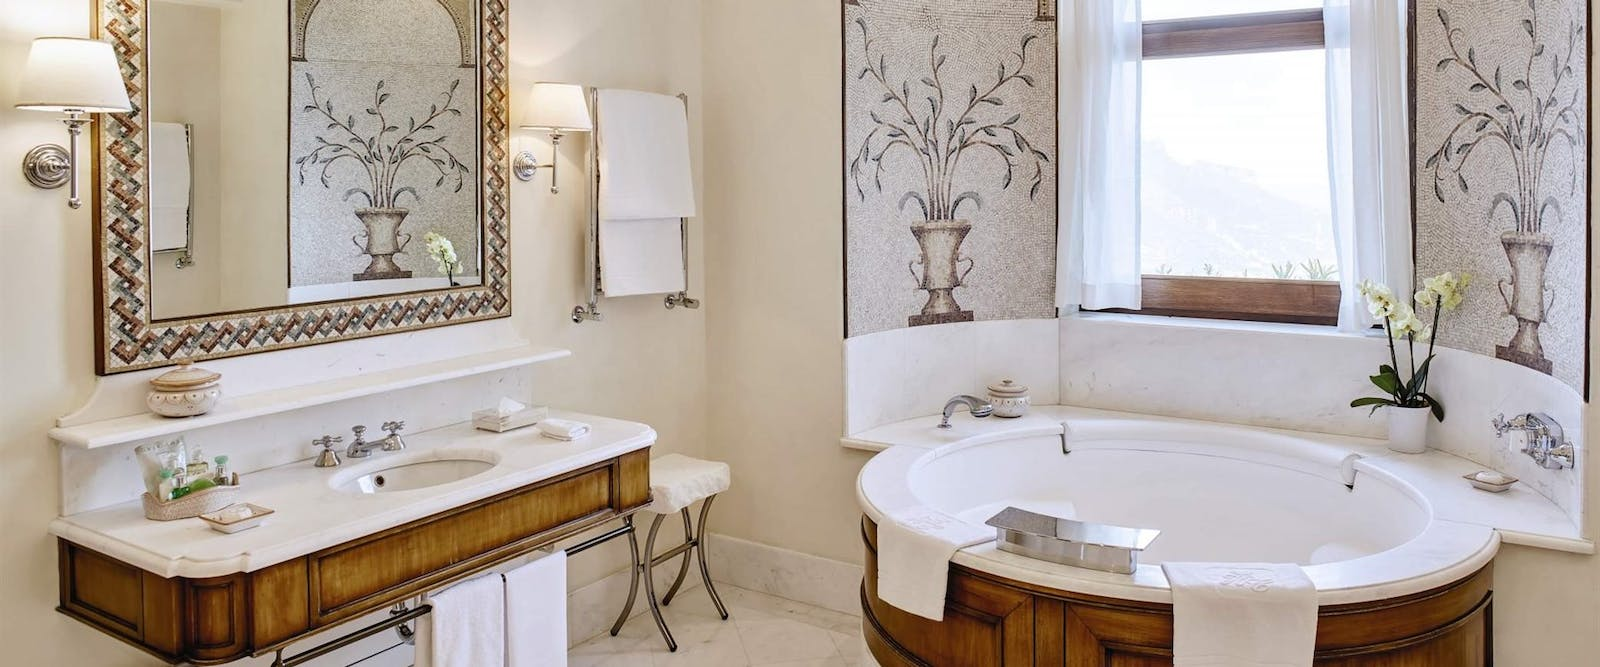 Executive Suite Bathroom at Belmond Hotel Caruso, Amalfi Coast, Italy